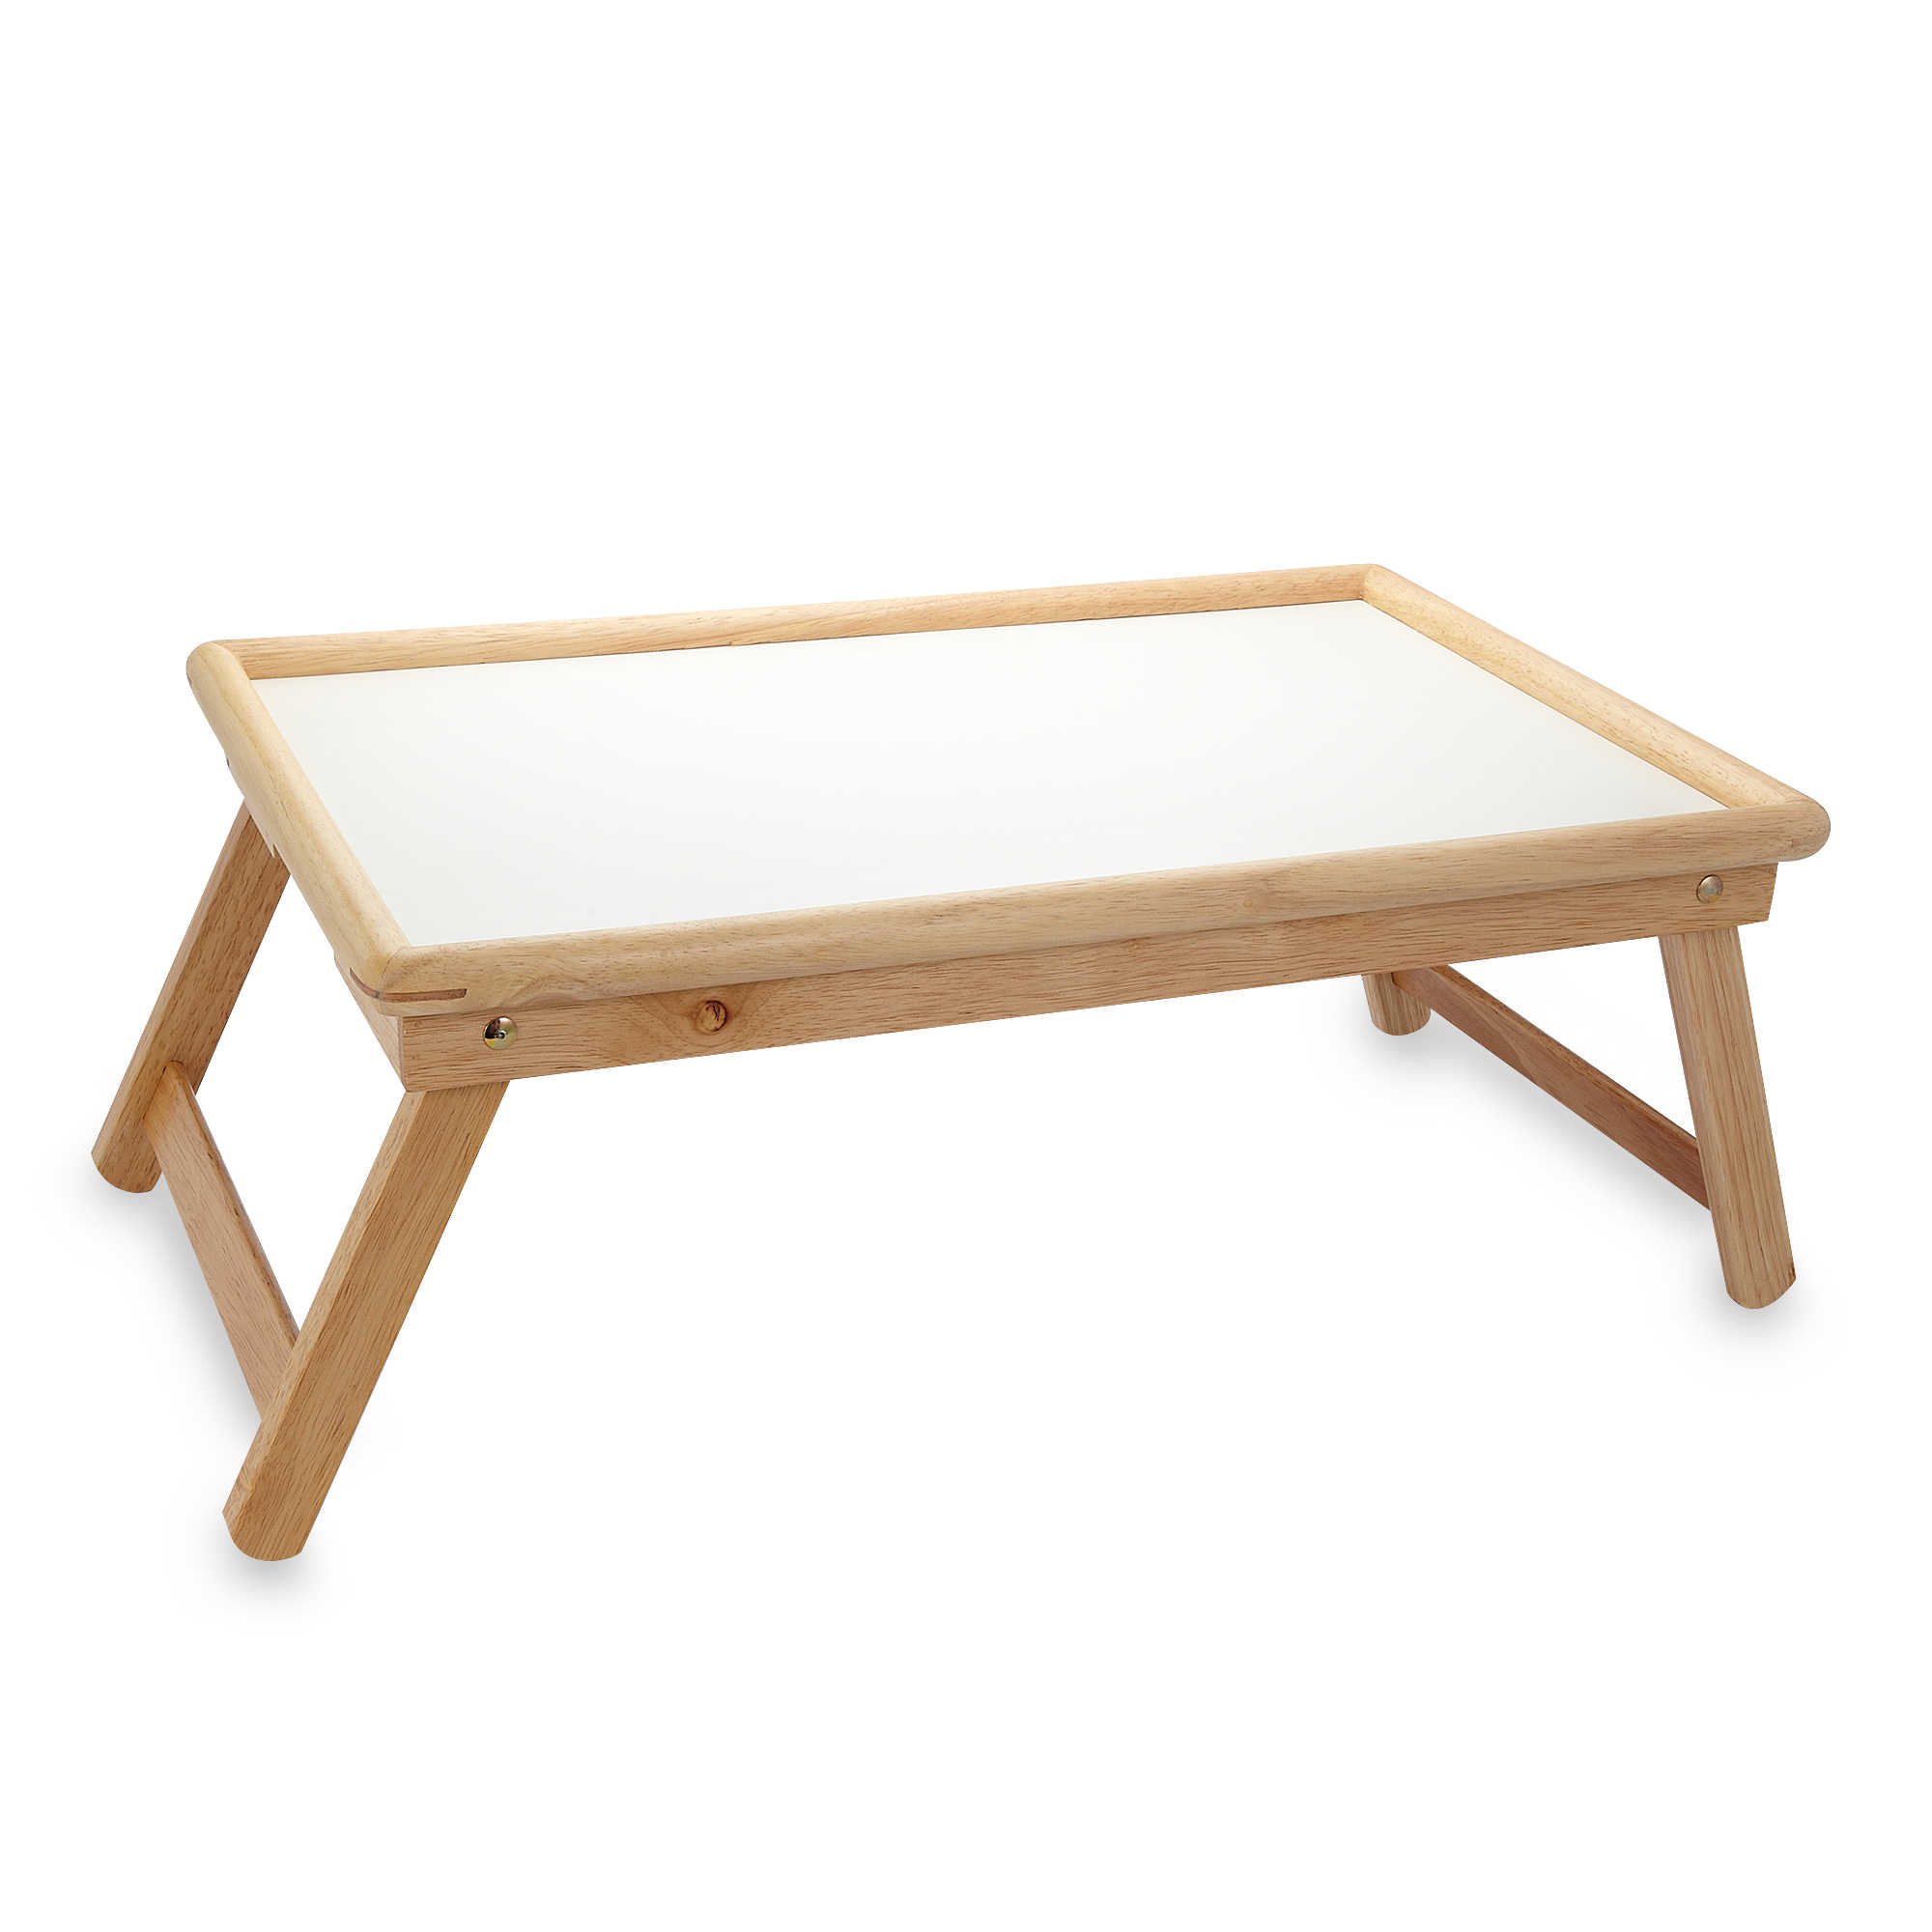 Folding legs pool table for sale - Beechwood Folding Bed Tray With White Laminate Top